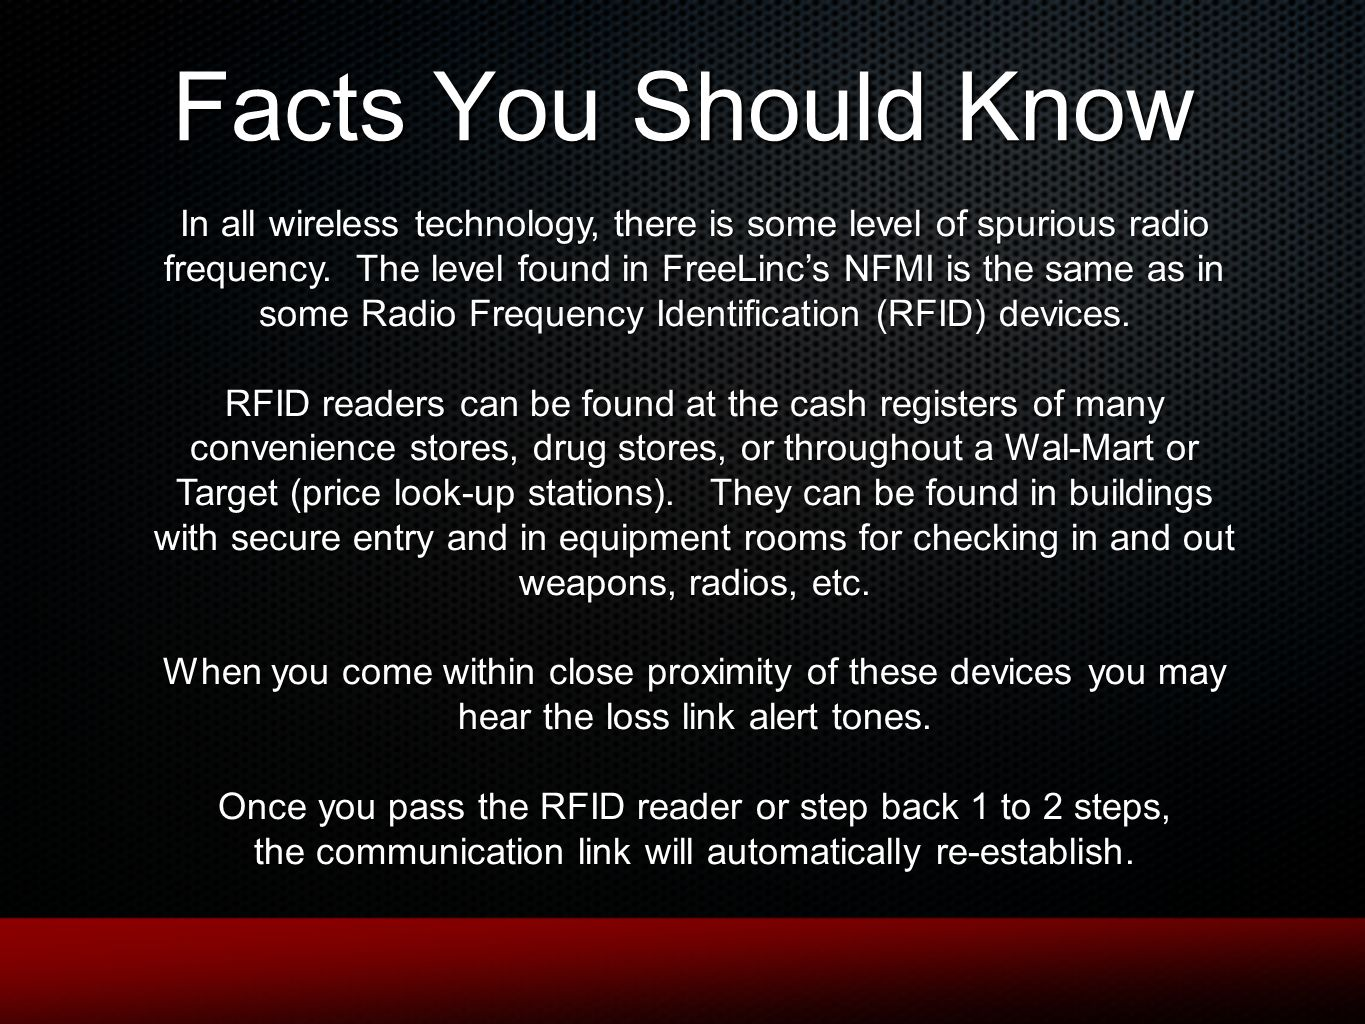 Facts You Should Know In all wireless technology, there is some level of spurious radio frequency. The level found in FreeLincs NFMI is the same as in